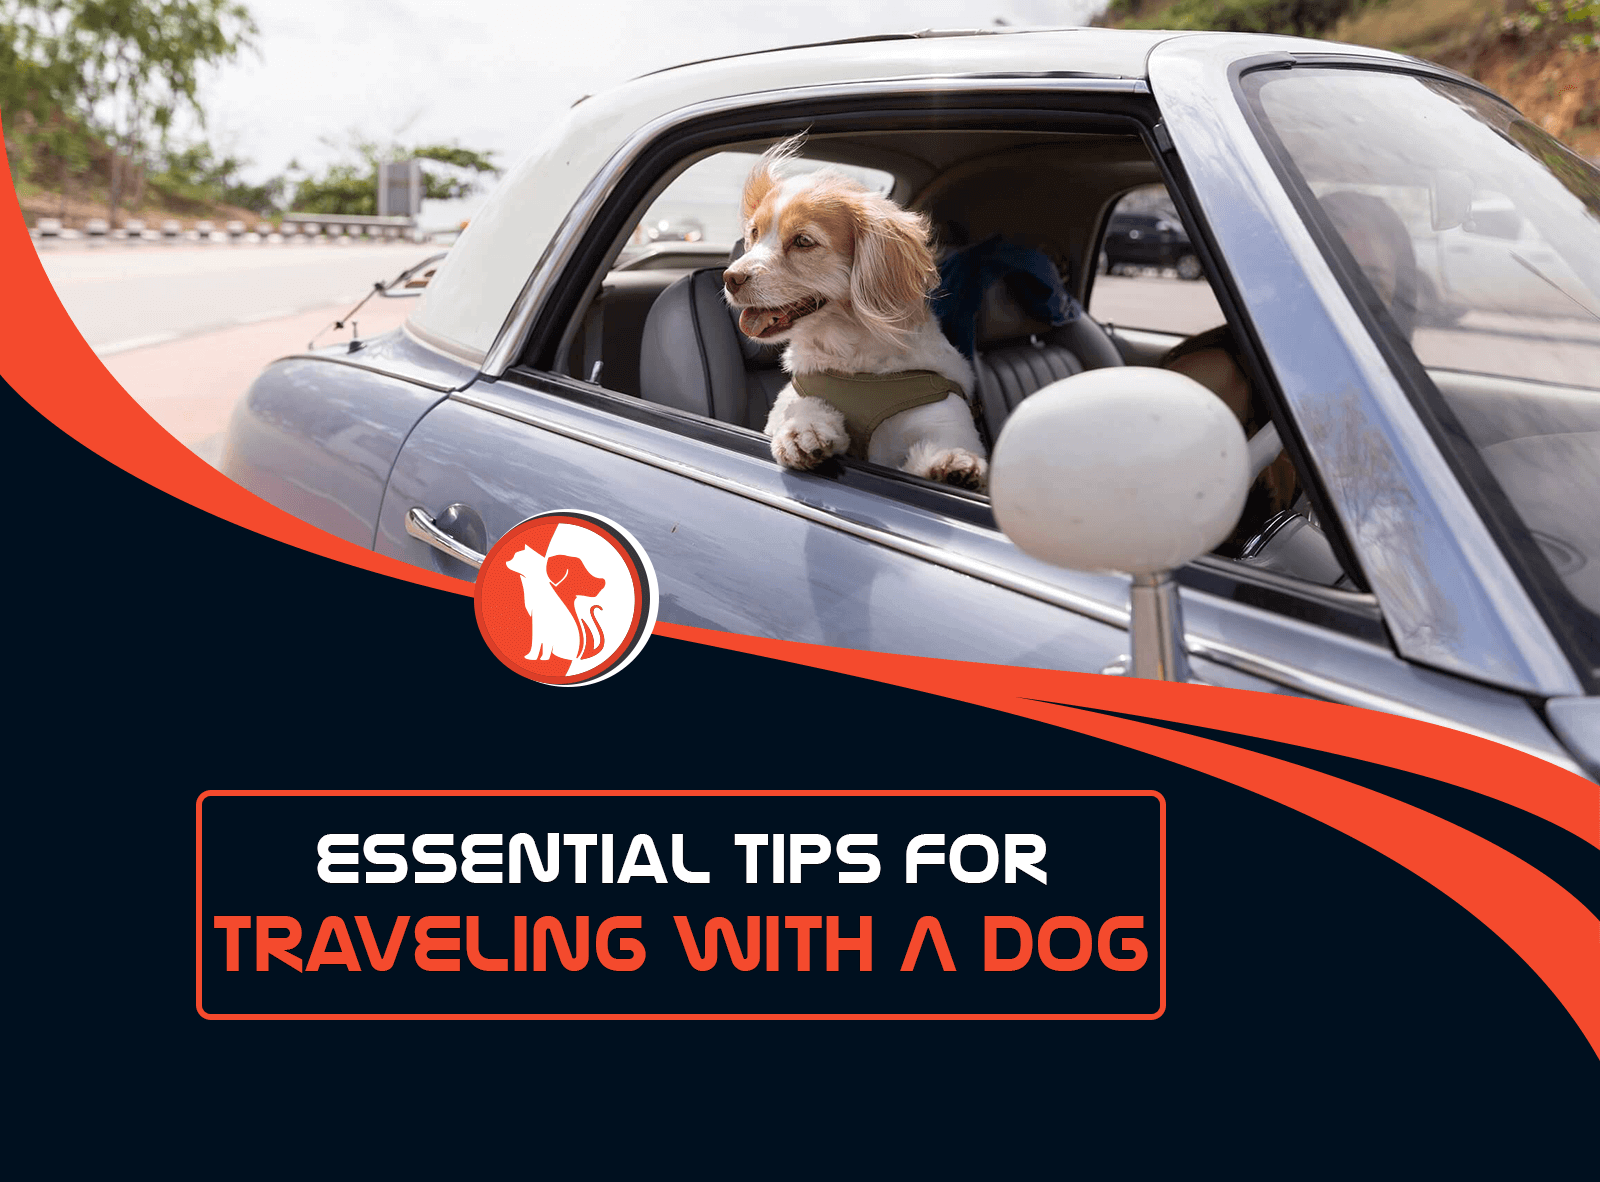 Essential Tips for Traveling with a Dog